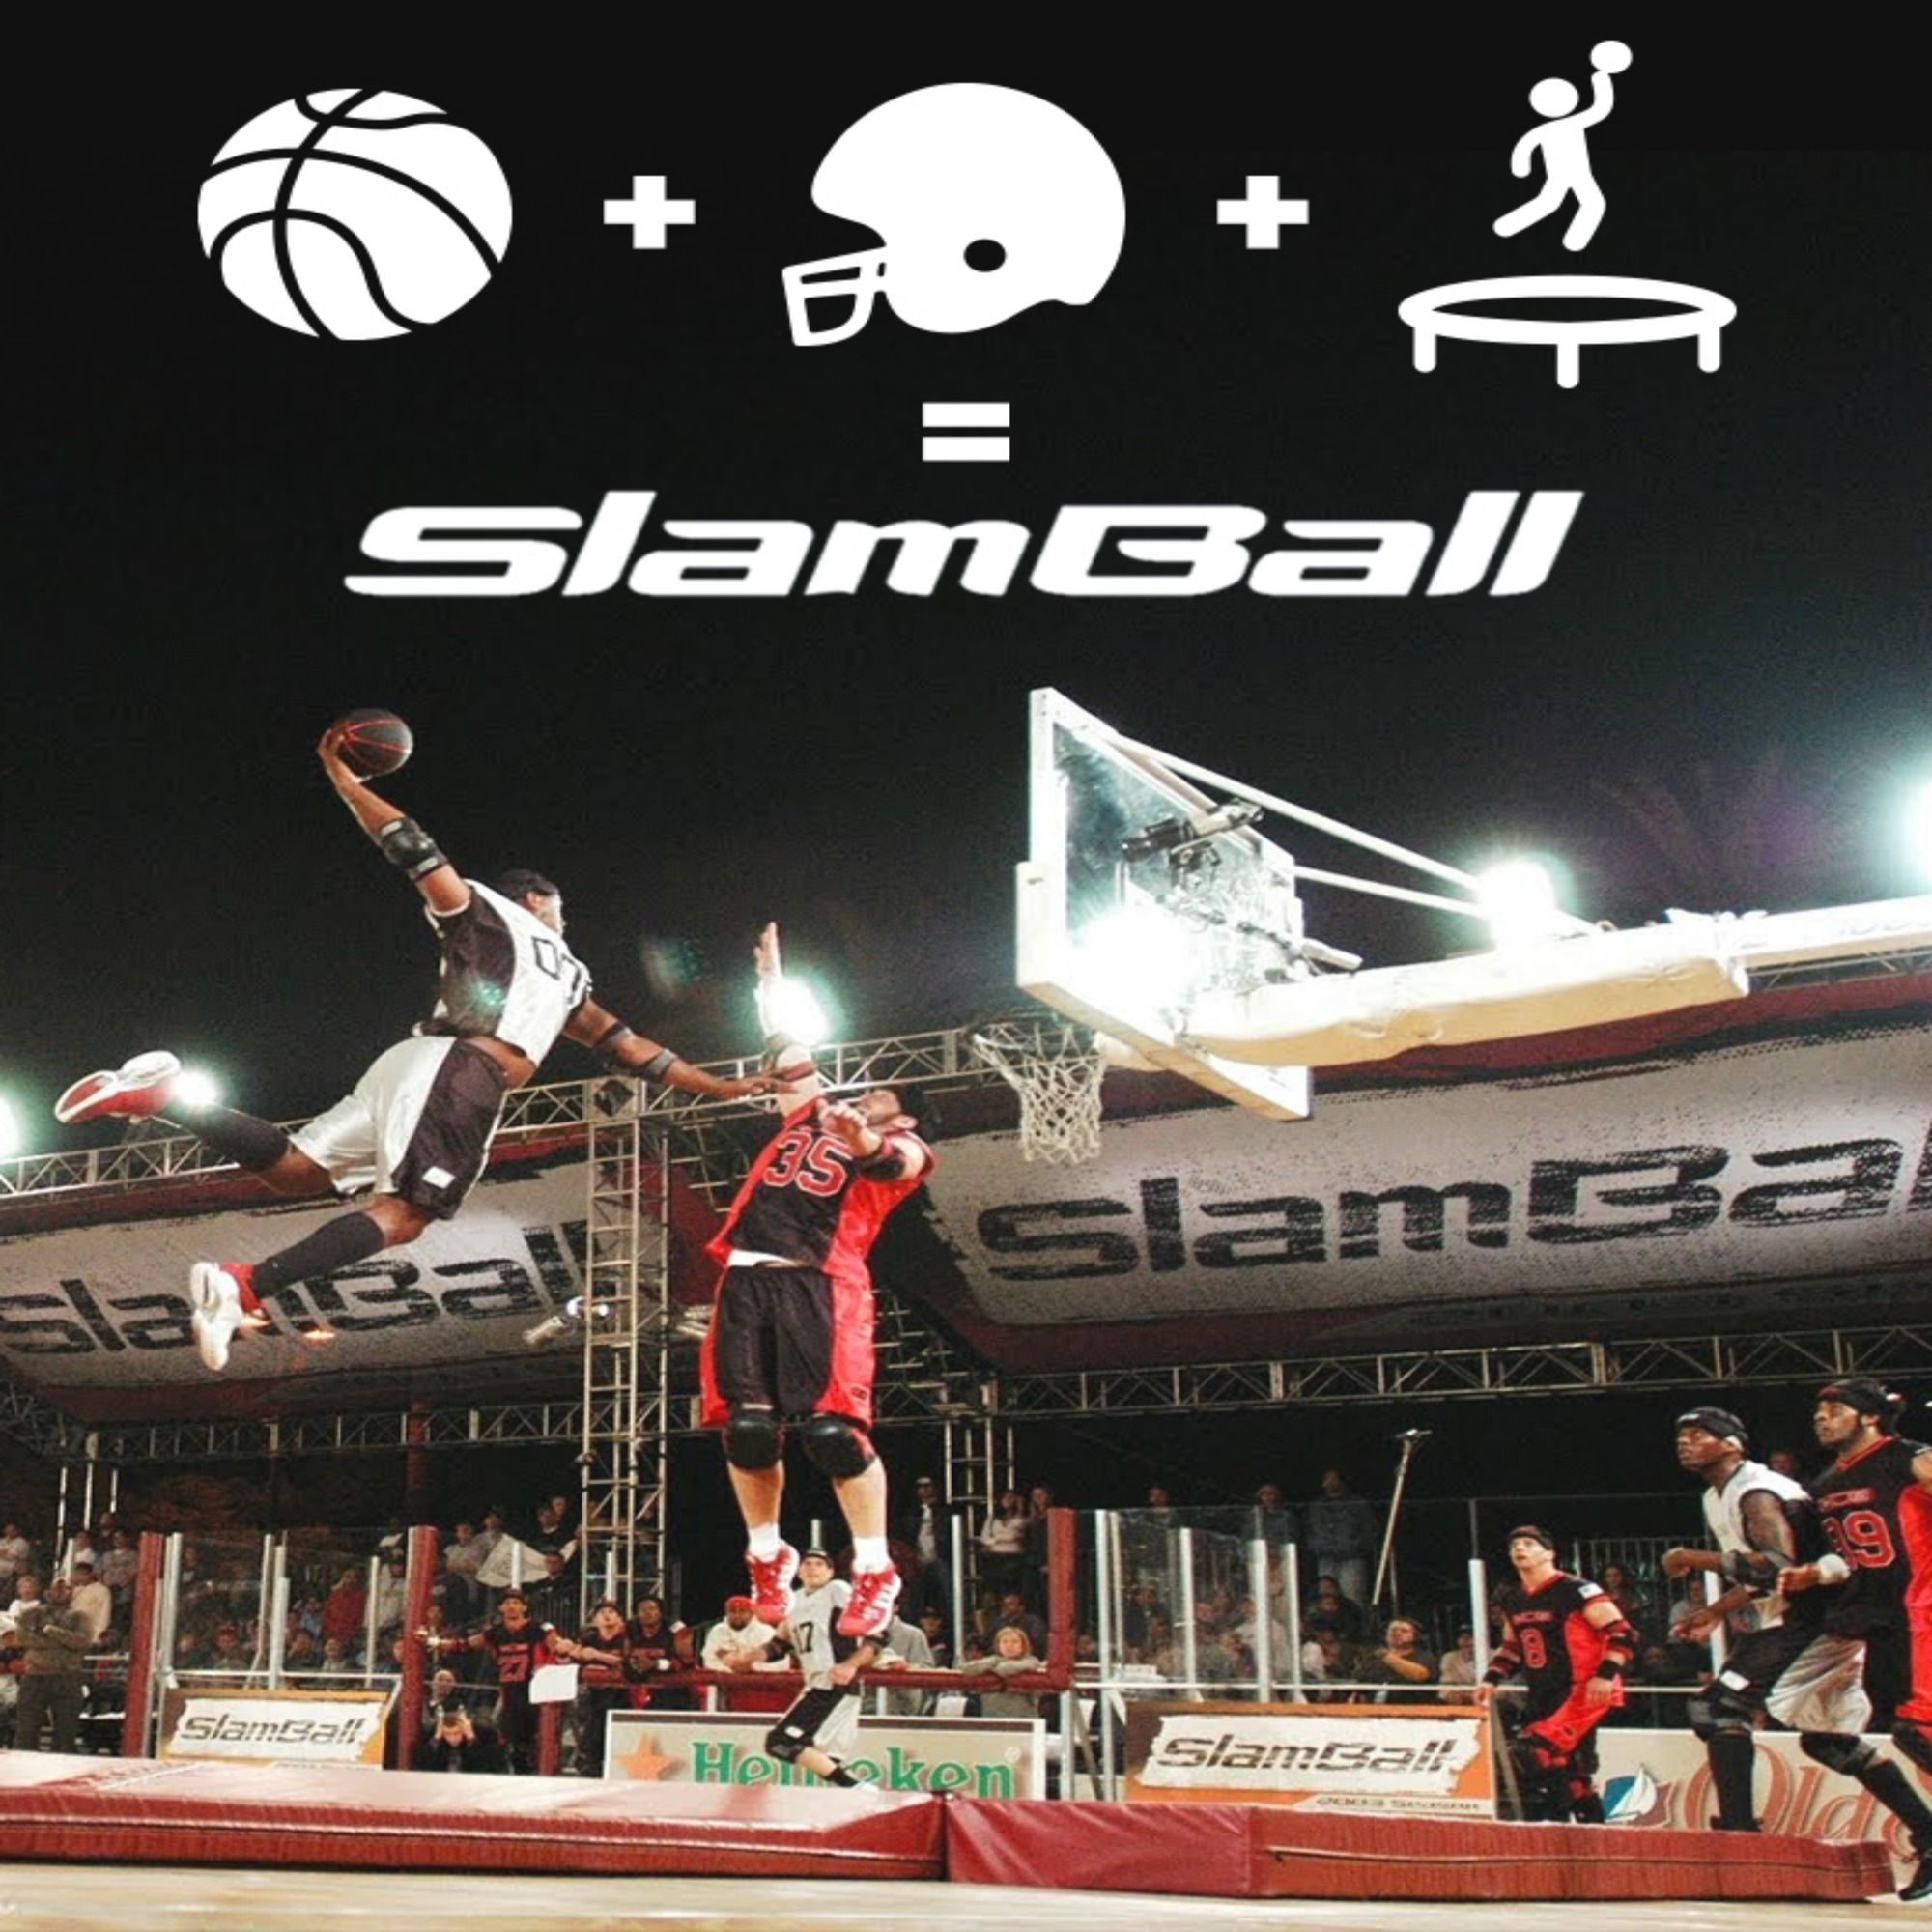 When will SlamBall make it to France? We speak to Owl